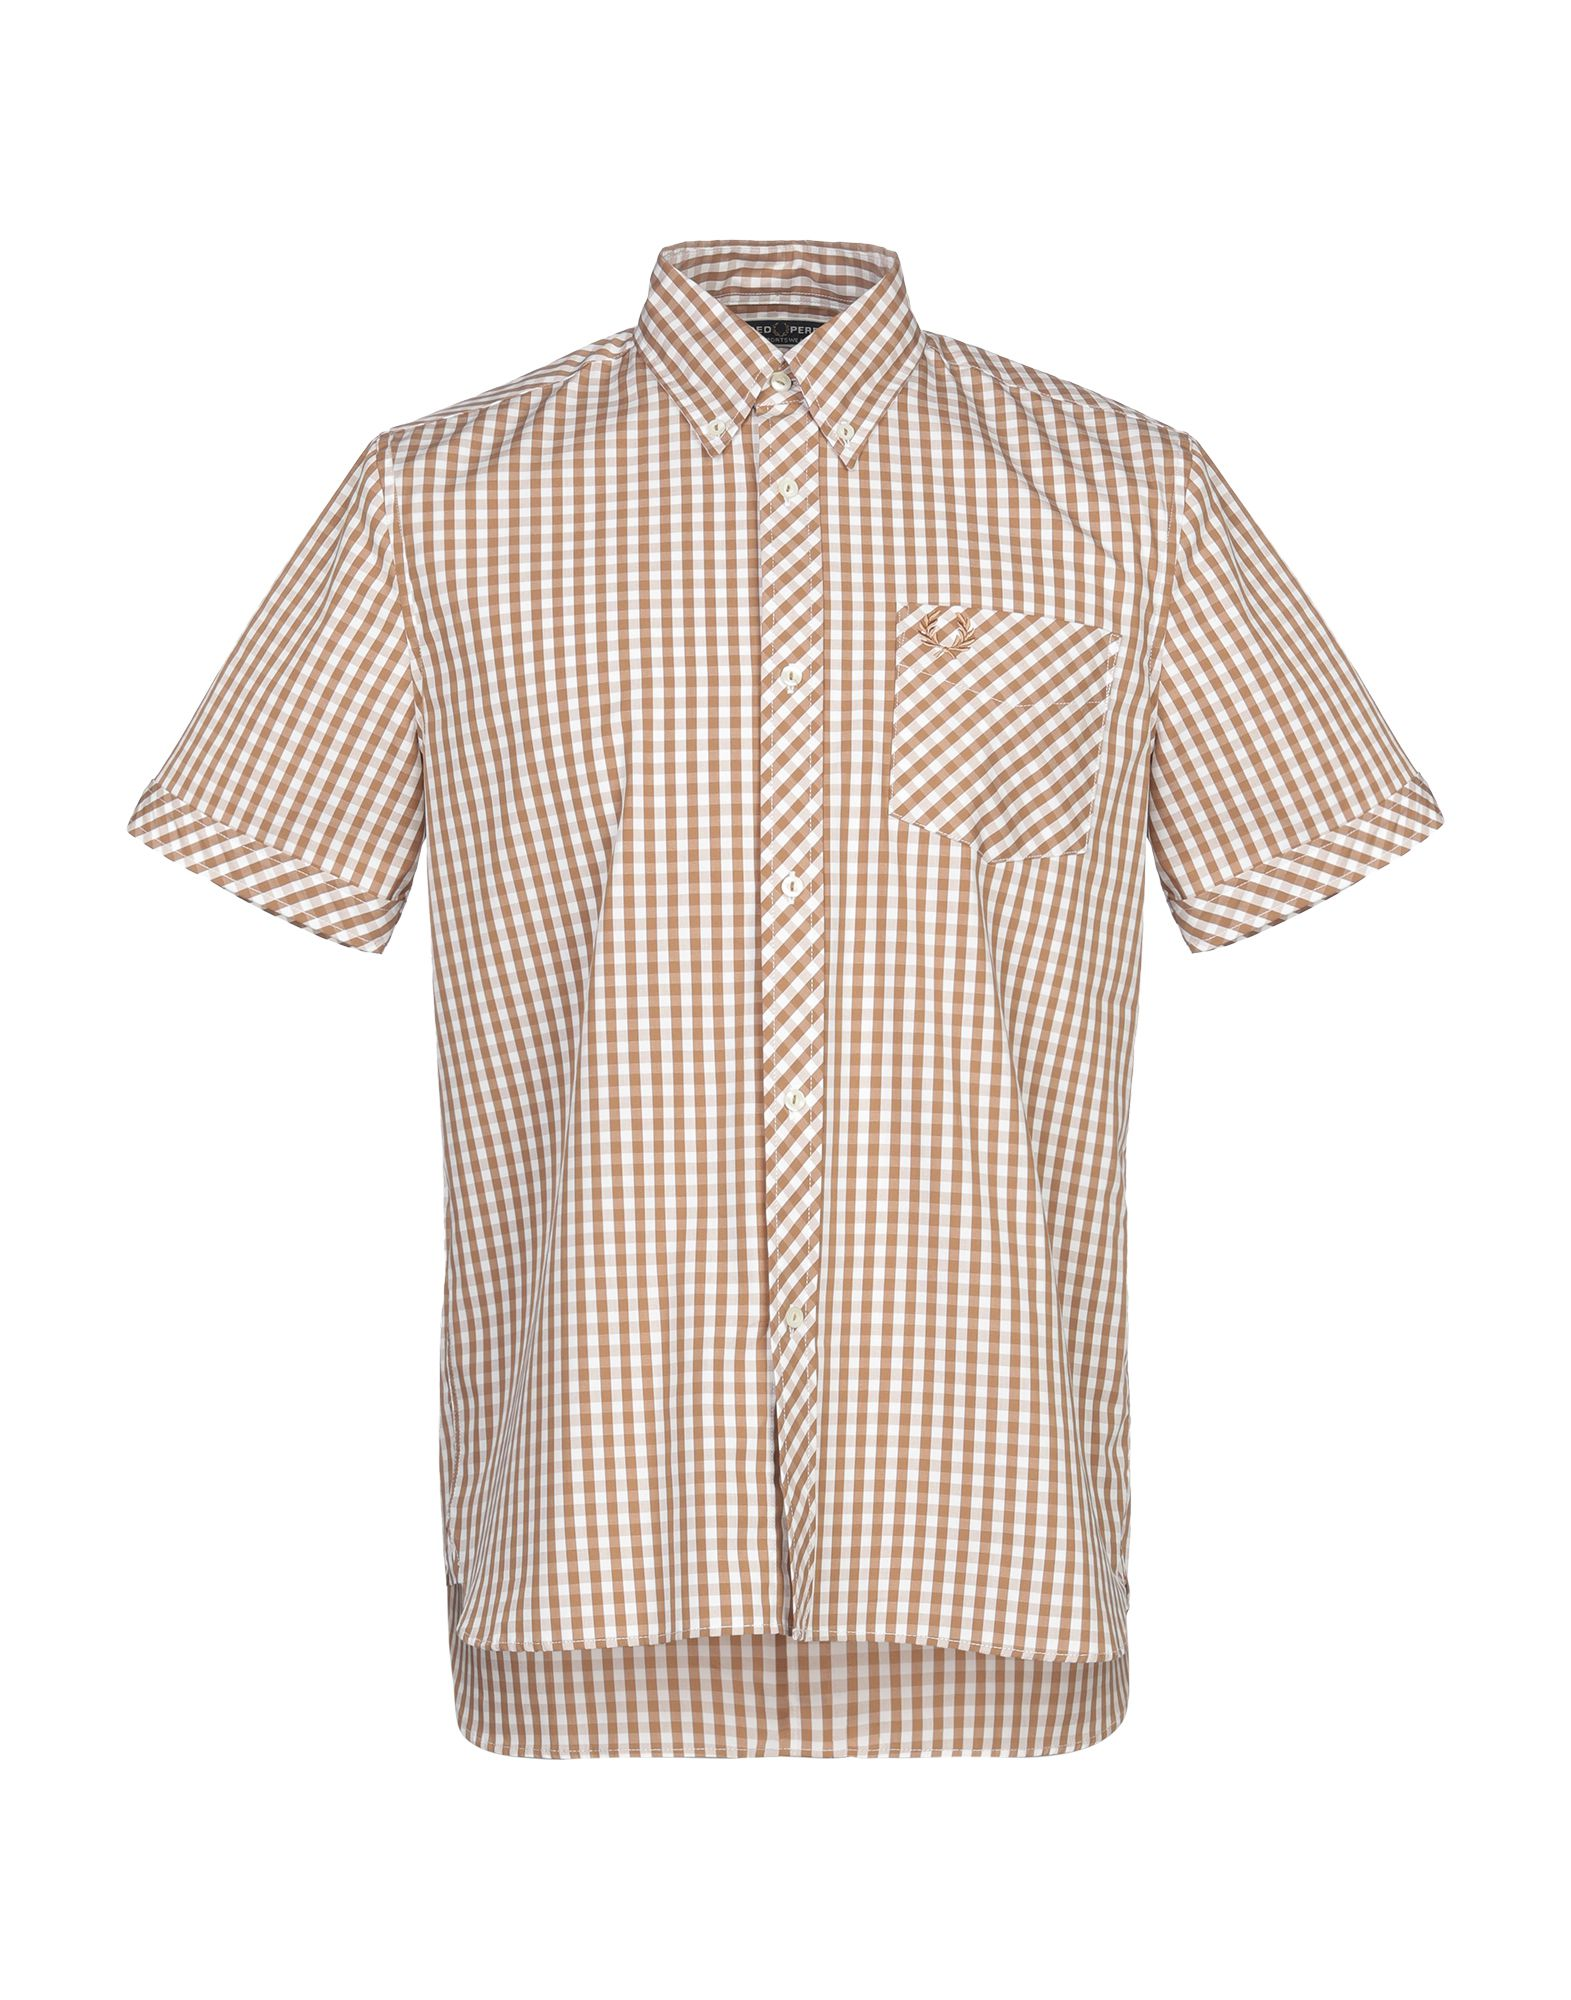 Фото - FRED PERRY Pубашка fred perry кардиган